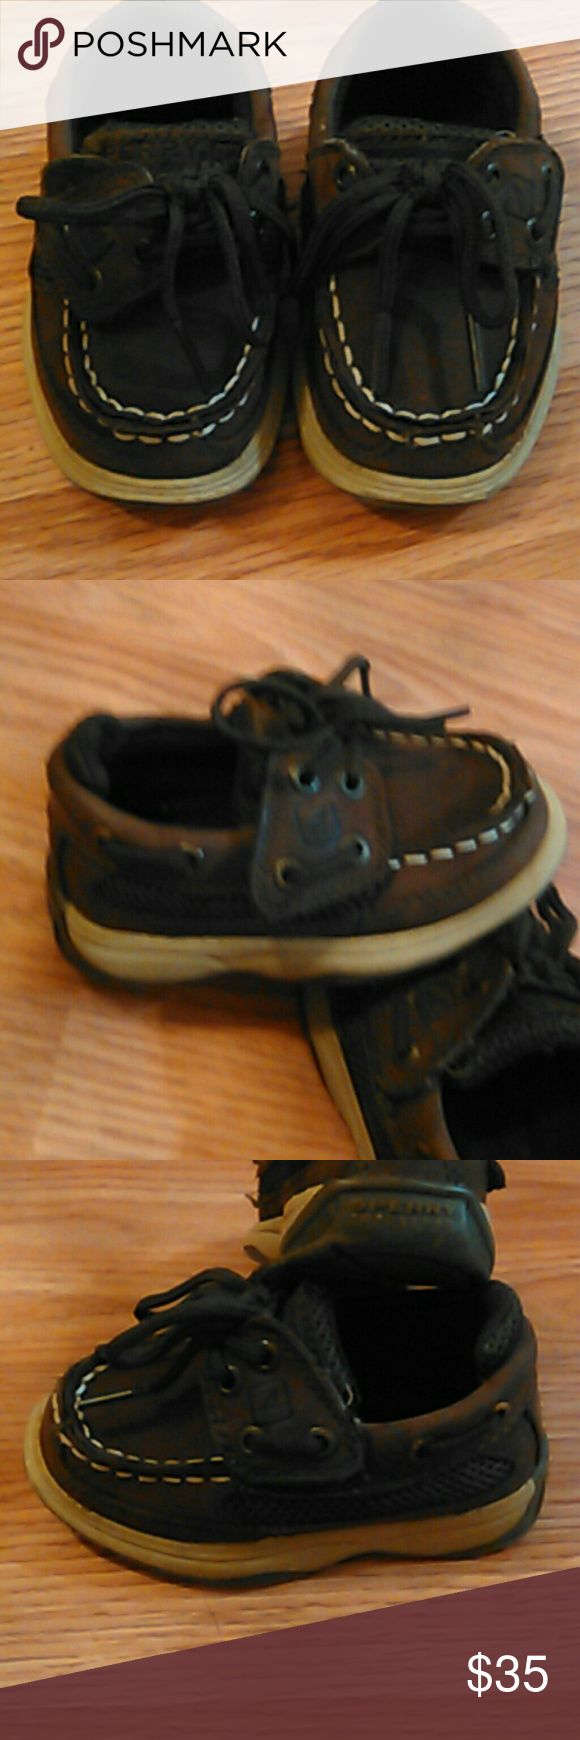 Sperry shows baby size 5M *clearance!! Sperry brand baby shoes size 5 M. Brown colors nice condition gently /rarely used. Velcro . Only looks like they tie. Really cute pair of shoes for your handsome little man!! Sperry Shoes Baby & Walker